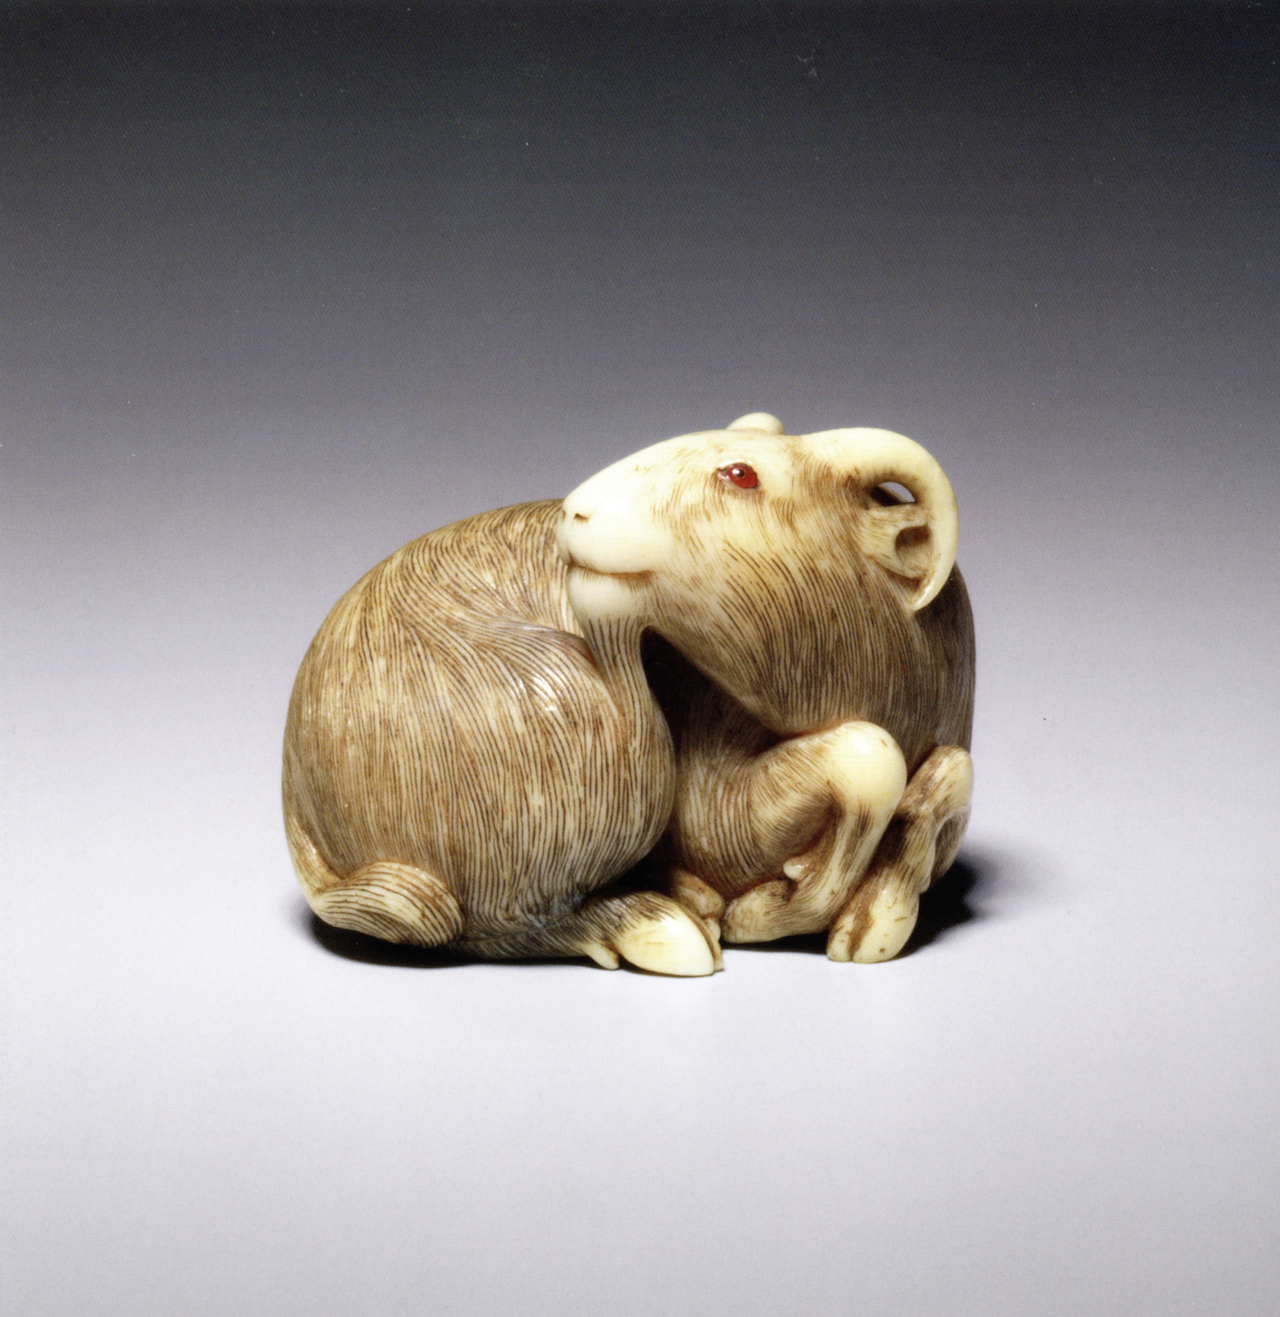 The Ghosts Mermaids and Beautiful Rats of Japans Tiny Netsuke Carvings